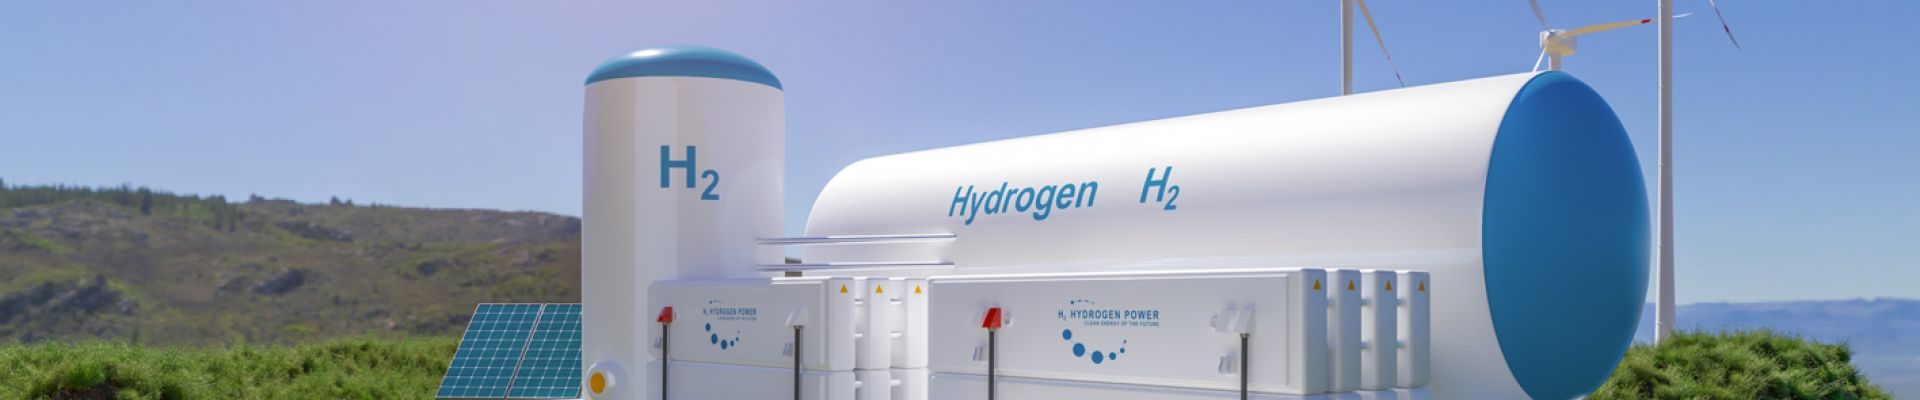 Hydrogen & storage: high strength, corrosion & pressure resistance